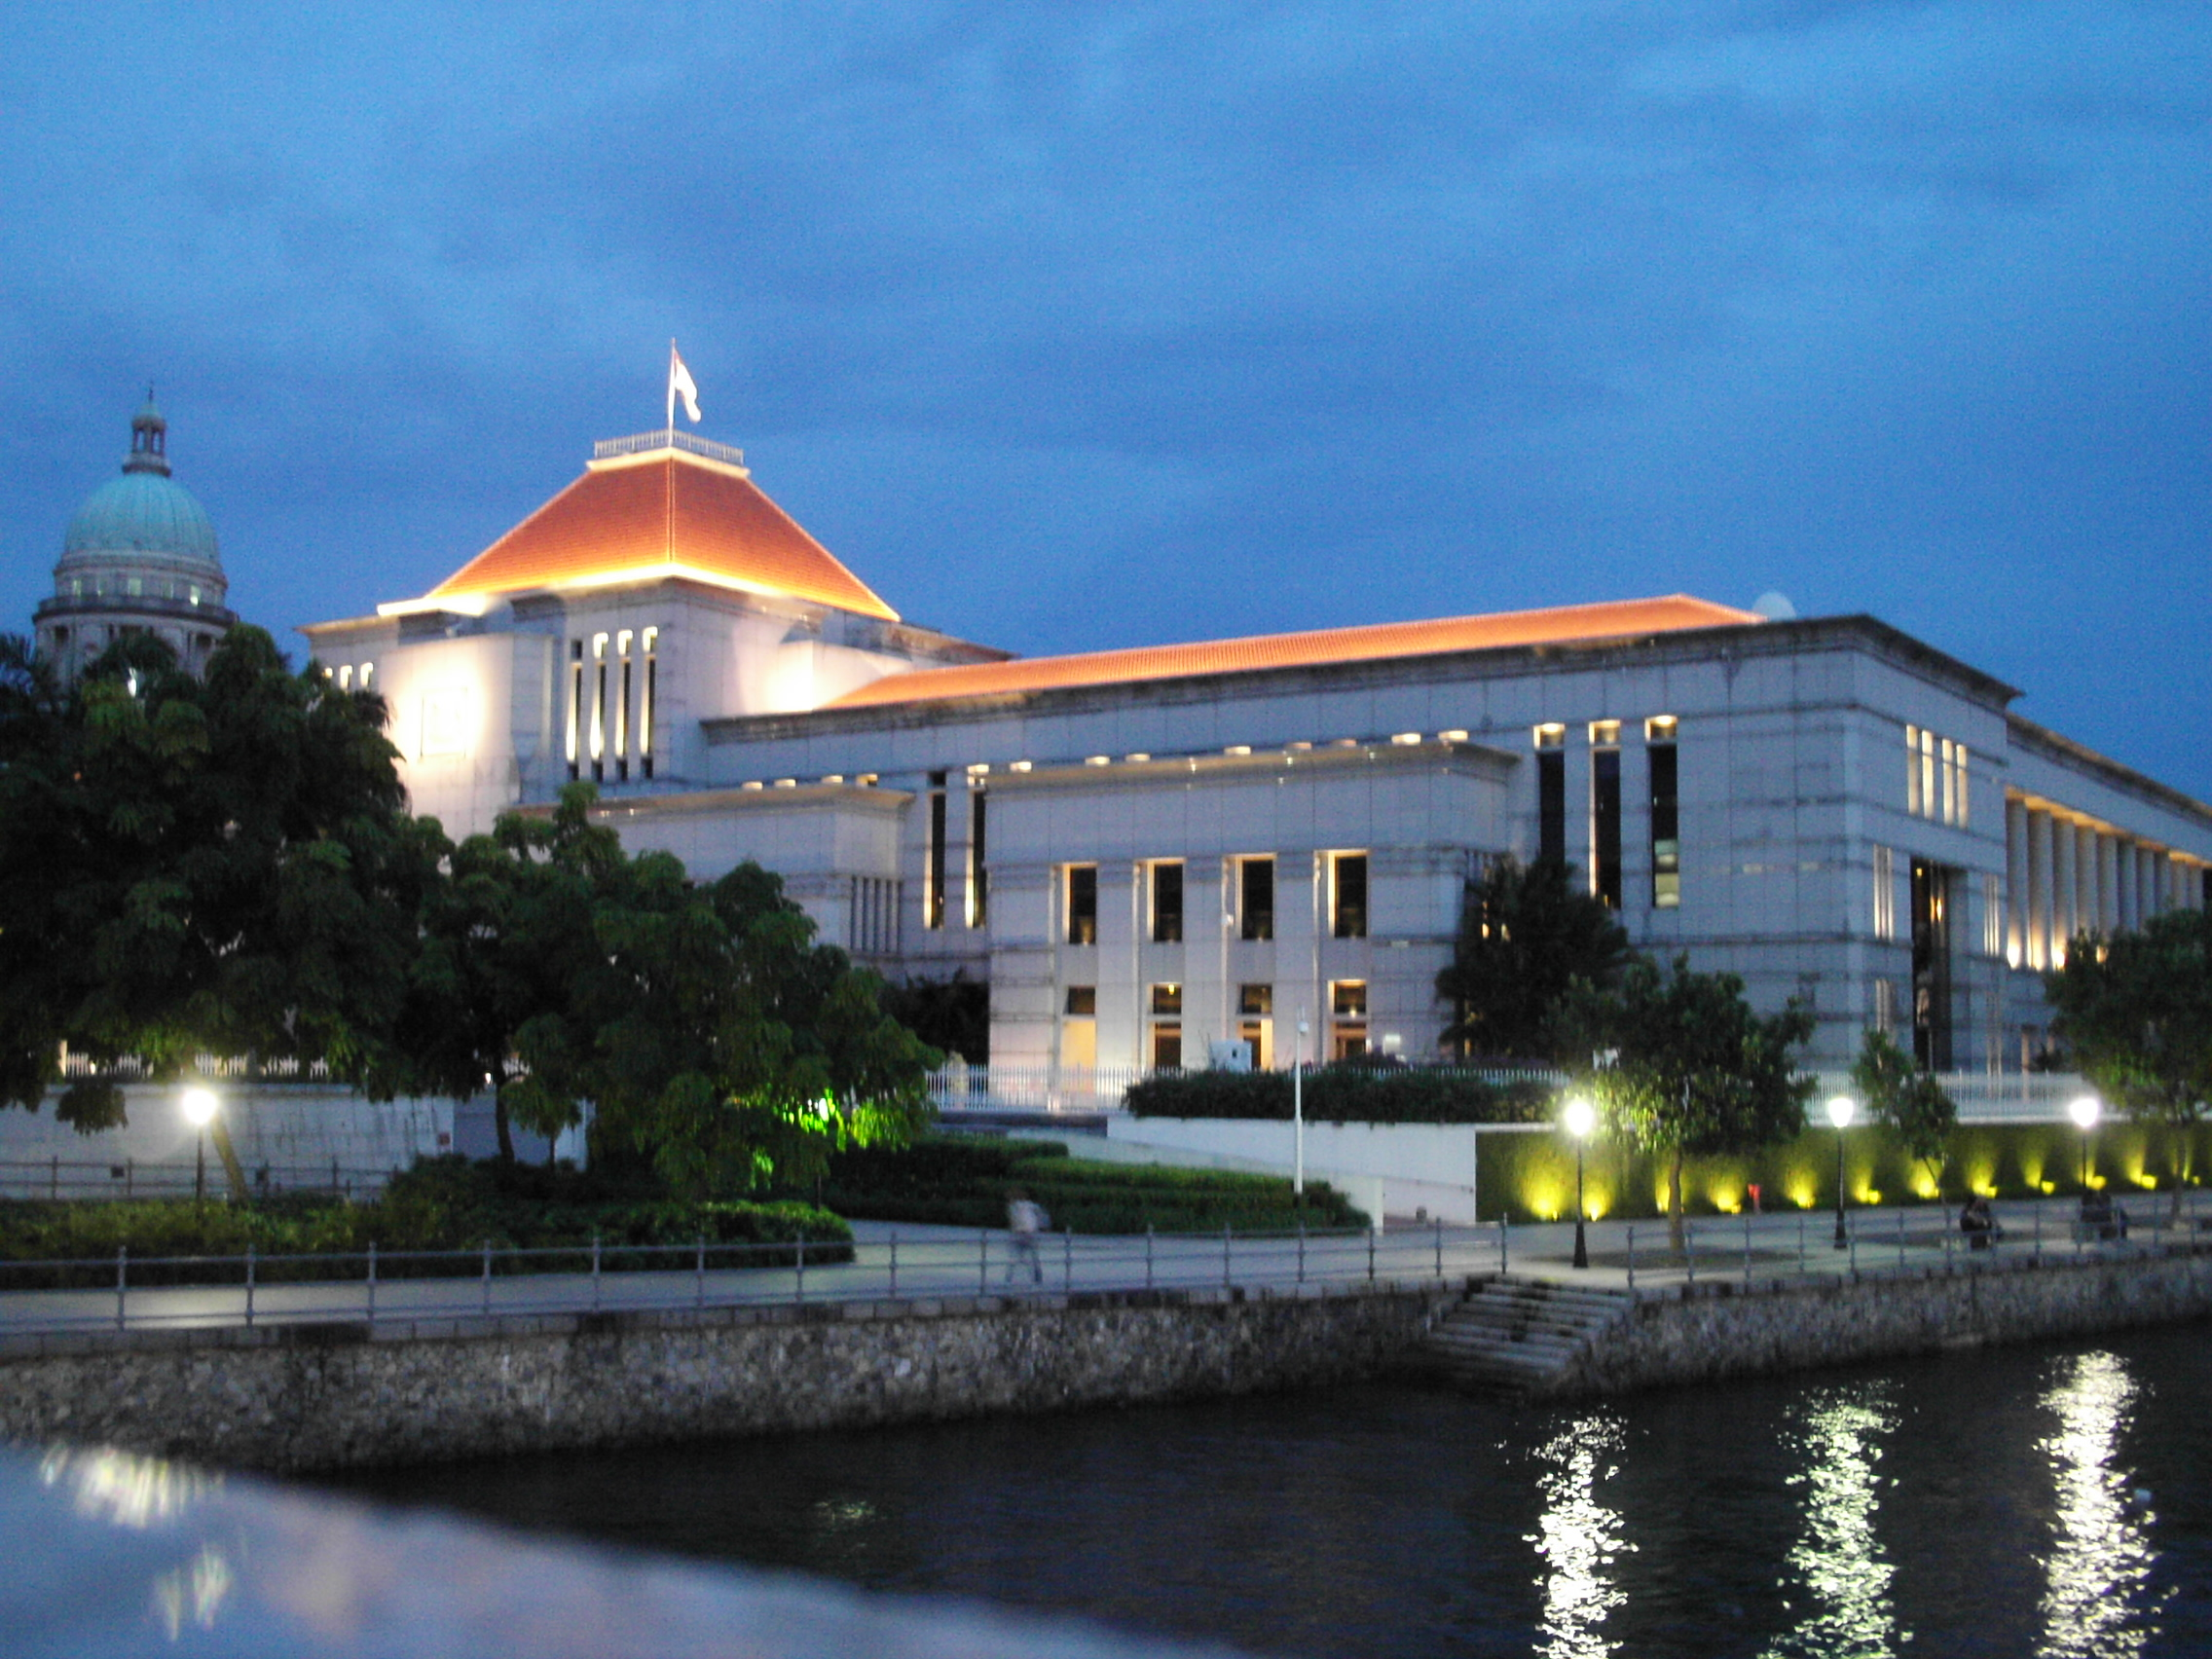 dating singapore government Singapore, justice , human rights under a decree dating from singapore's days as section of the population that the singapore government is unjust and unfair.